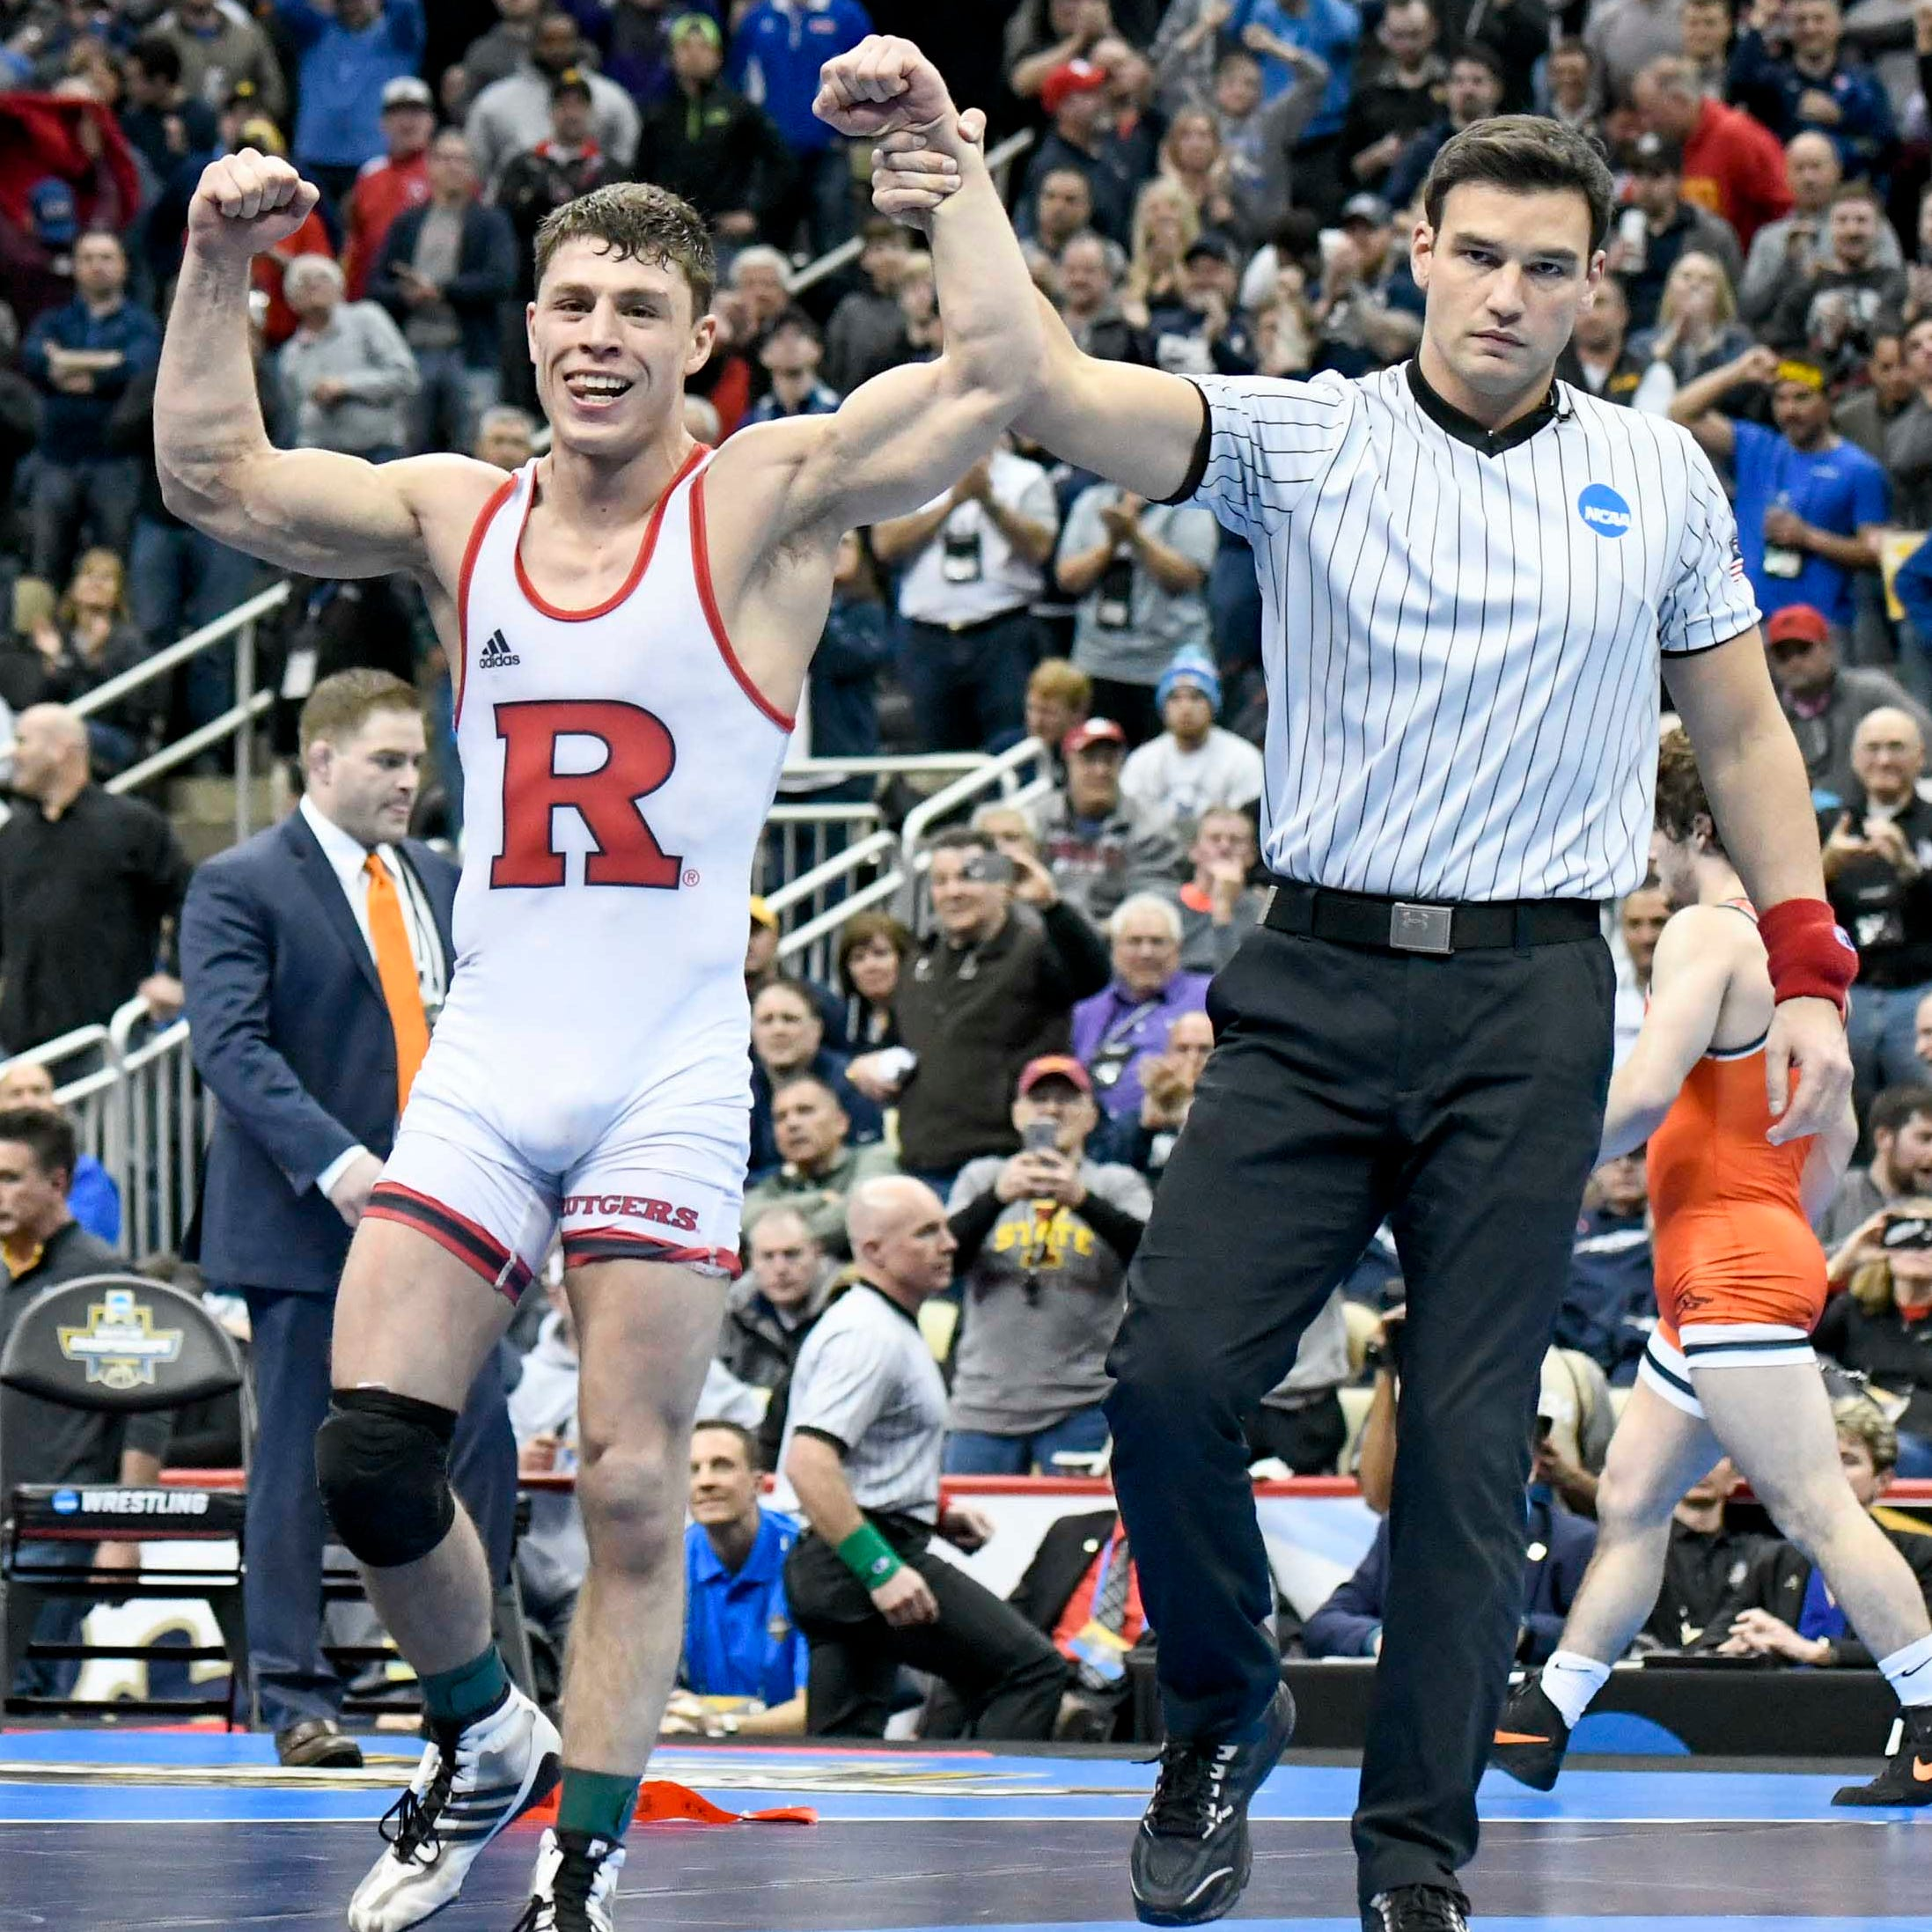 College wrestling: Rutgers Big Ten Conference opponents for 2020 announced